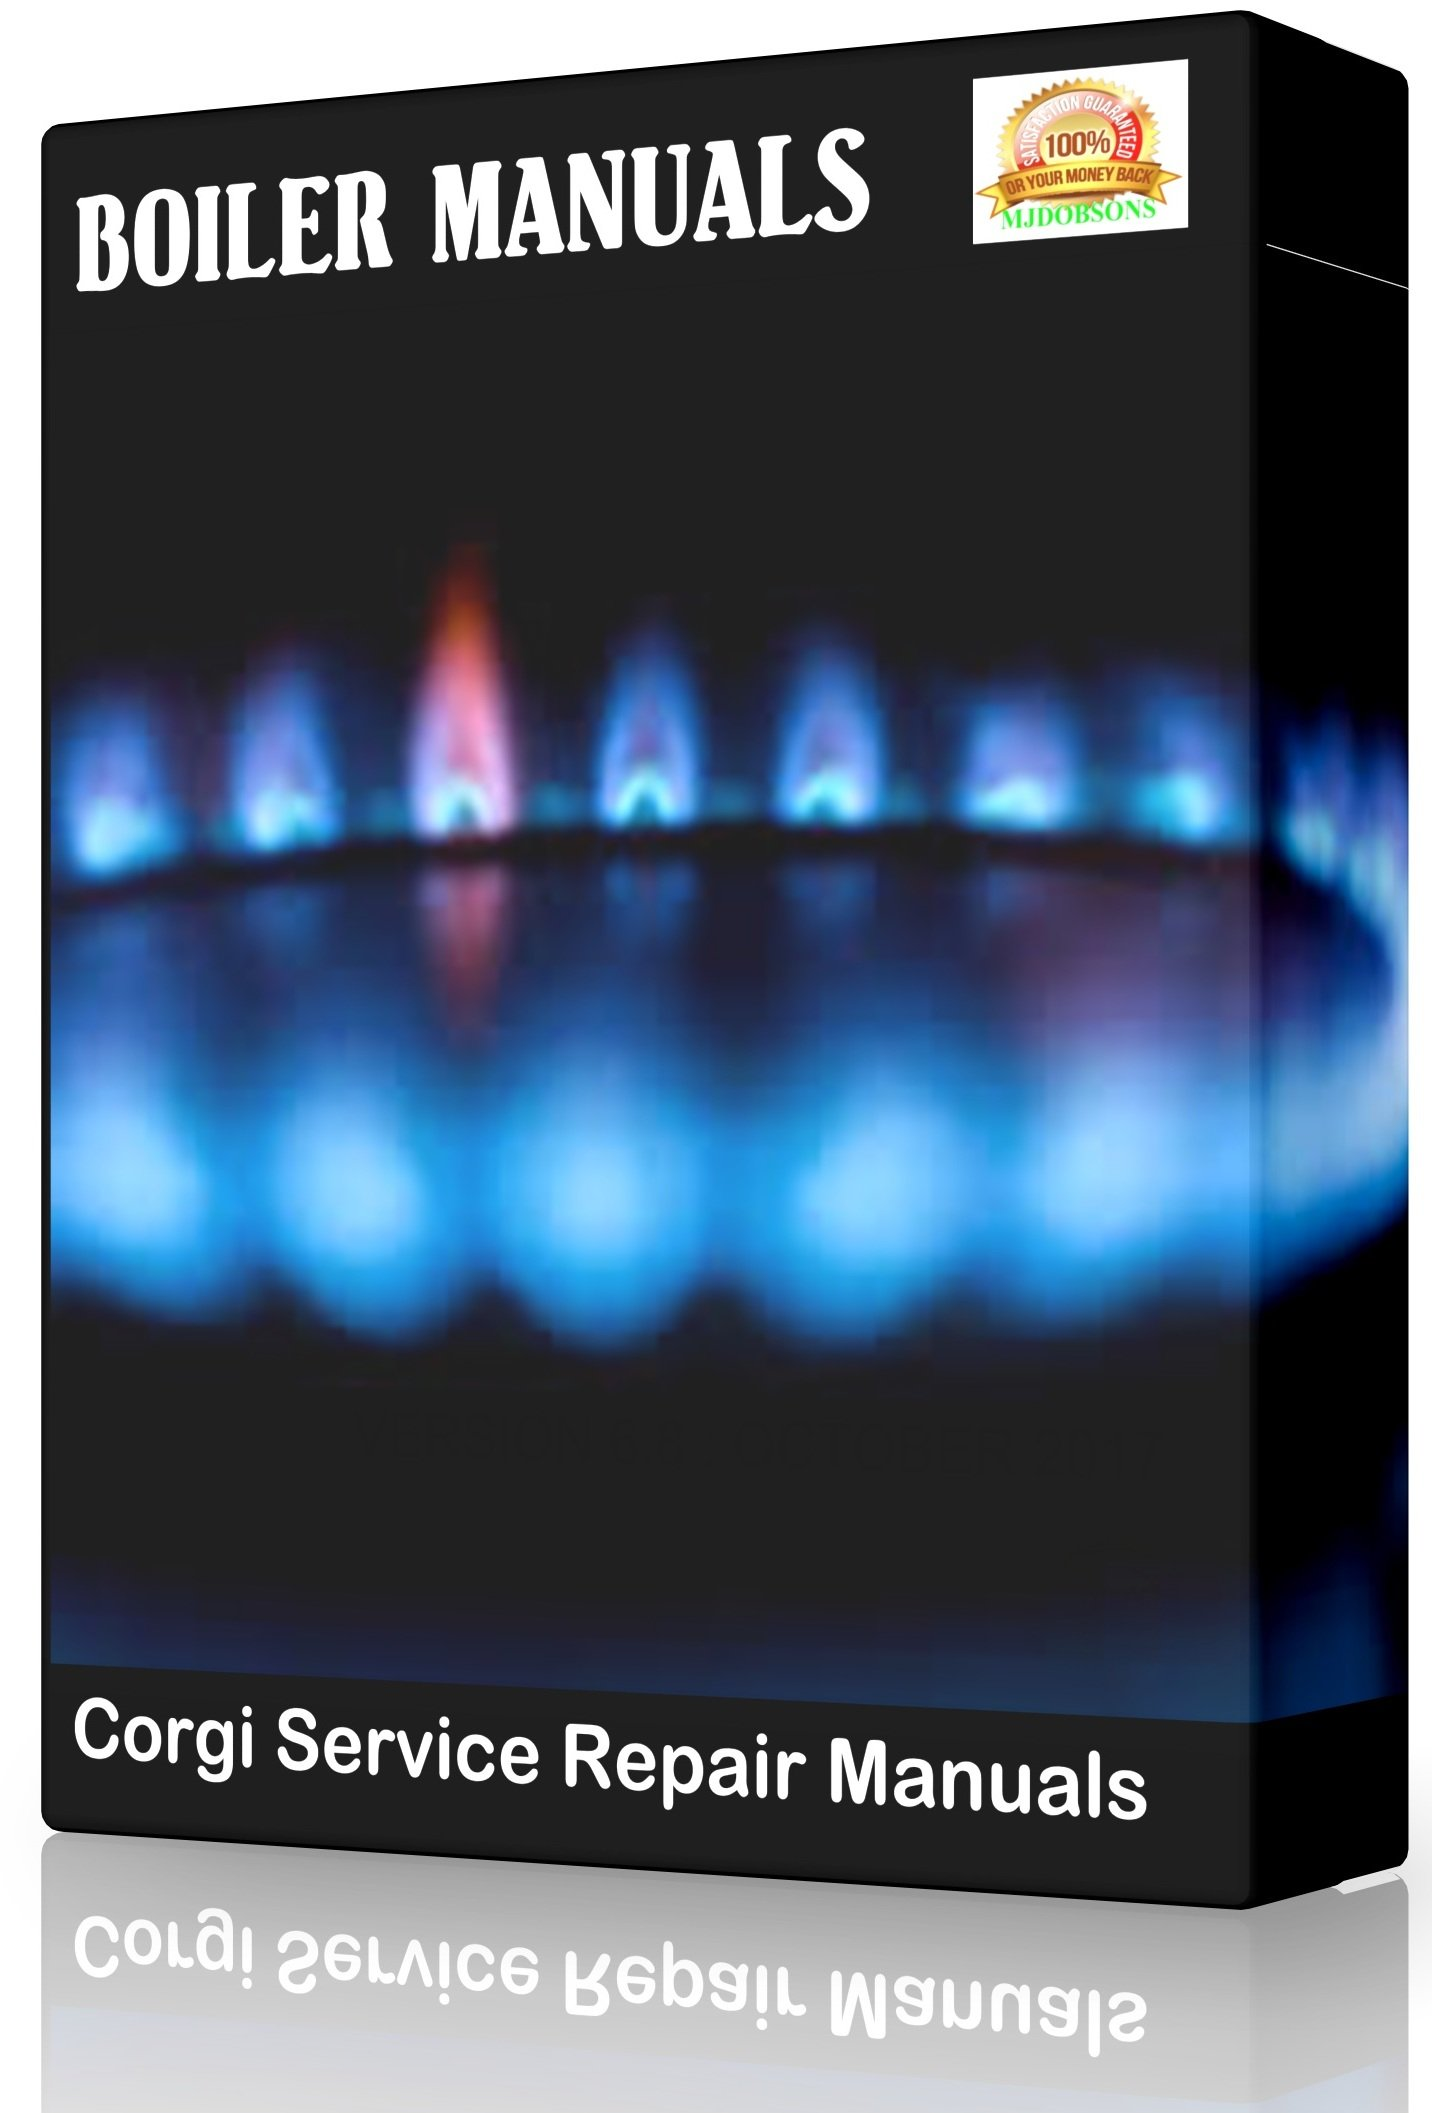 central boiler 5036 owners manual